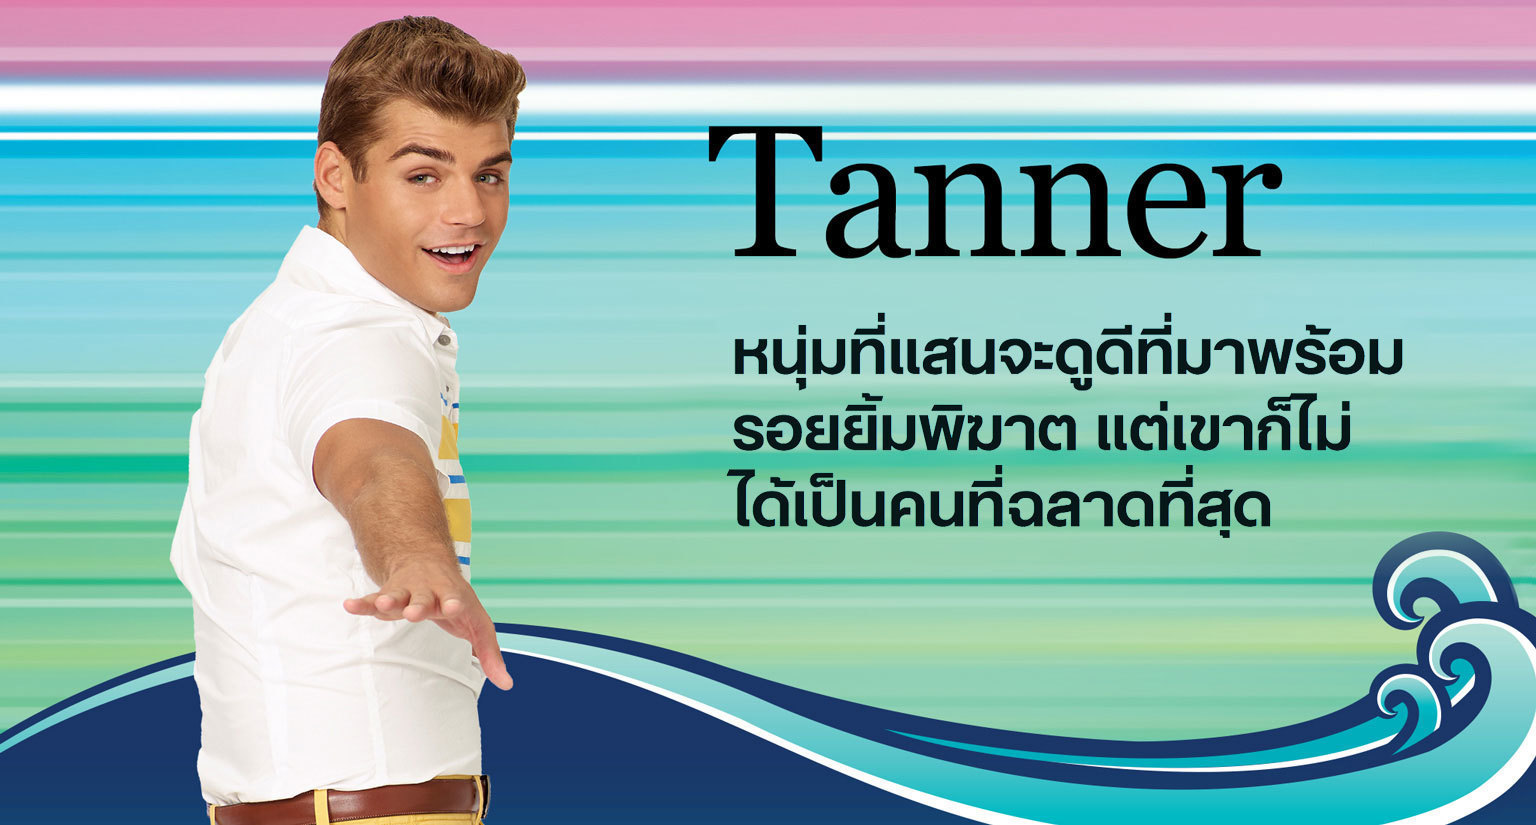 Teen Beach 2 - Show Home - Tanner Character Hero - TH